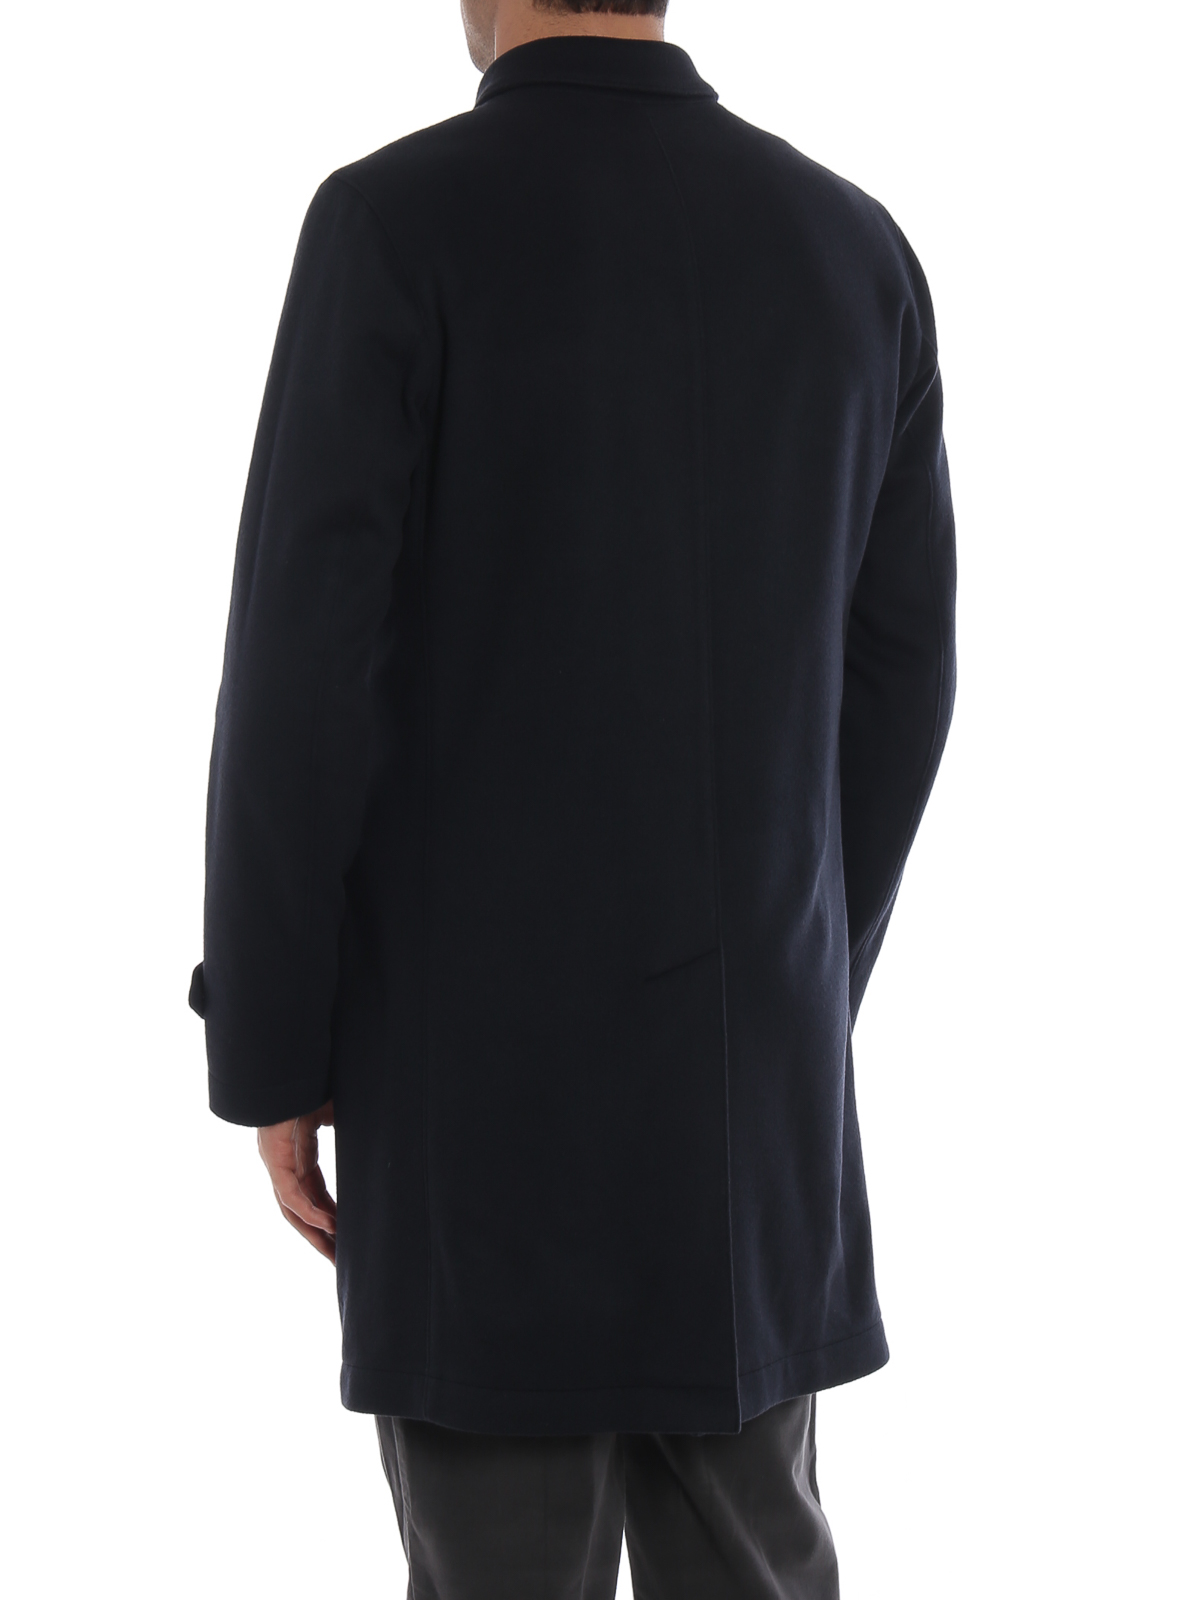 fc60d5bef7 Herno - Pure cashmere single breasted soft coat - short coats ...